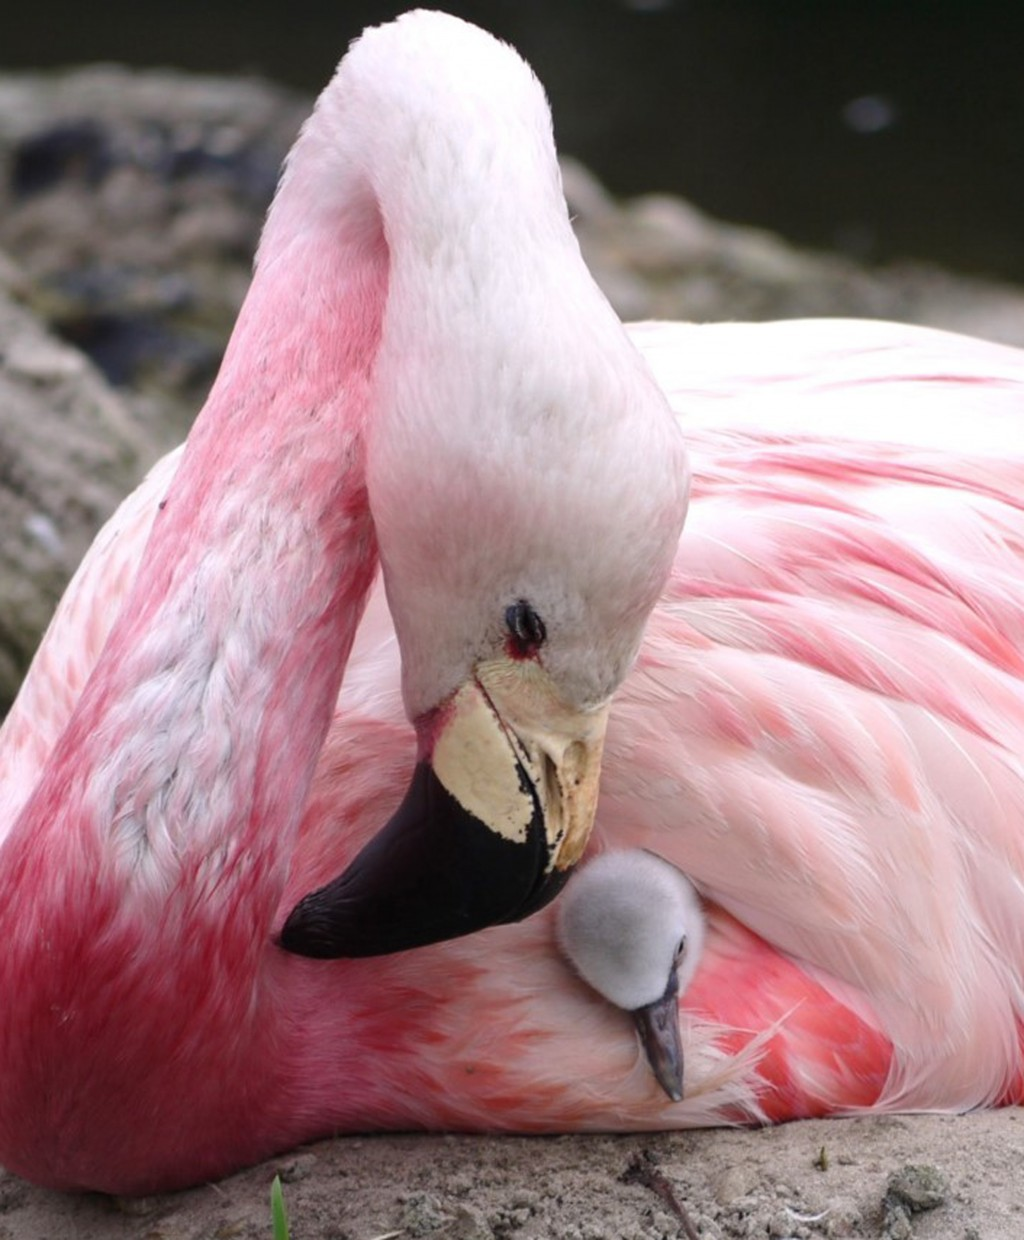 An Andean flamingo swaddles a surrogate Chilean flamingo chick, supplanted to replace its own infertile egg, in Slimbridge, England, in this undated p